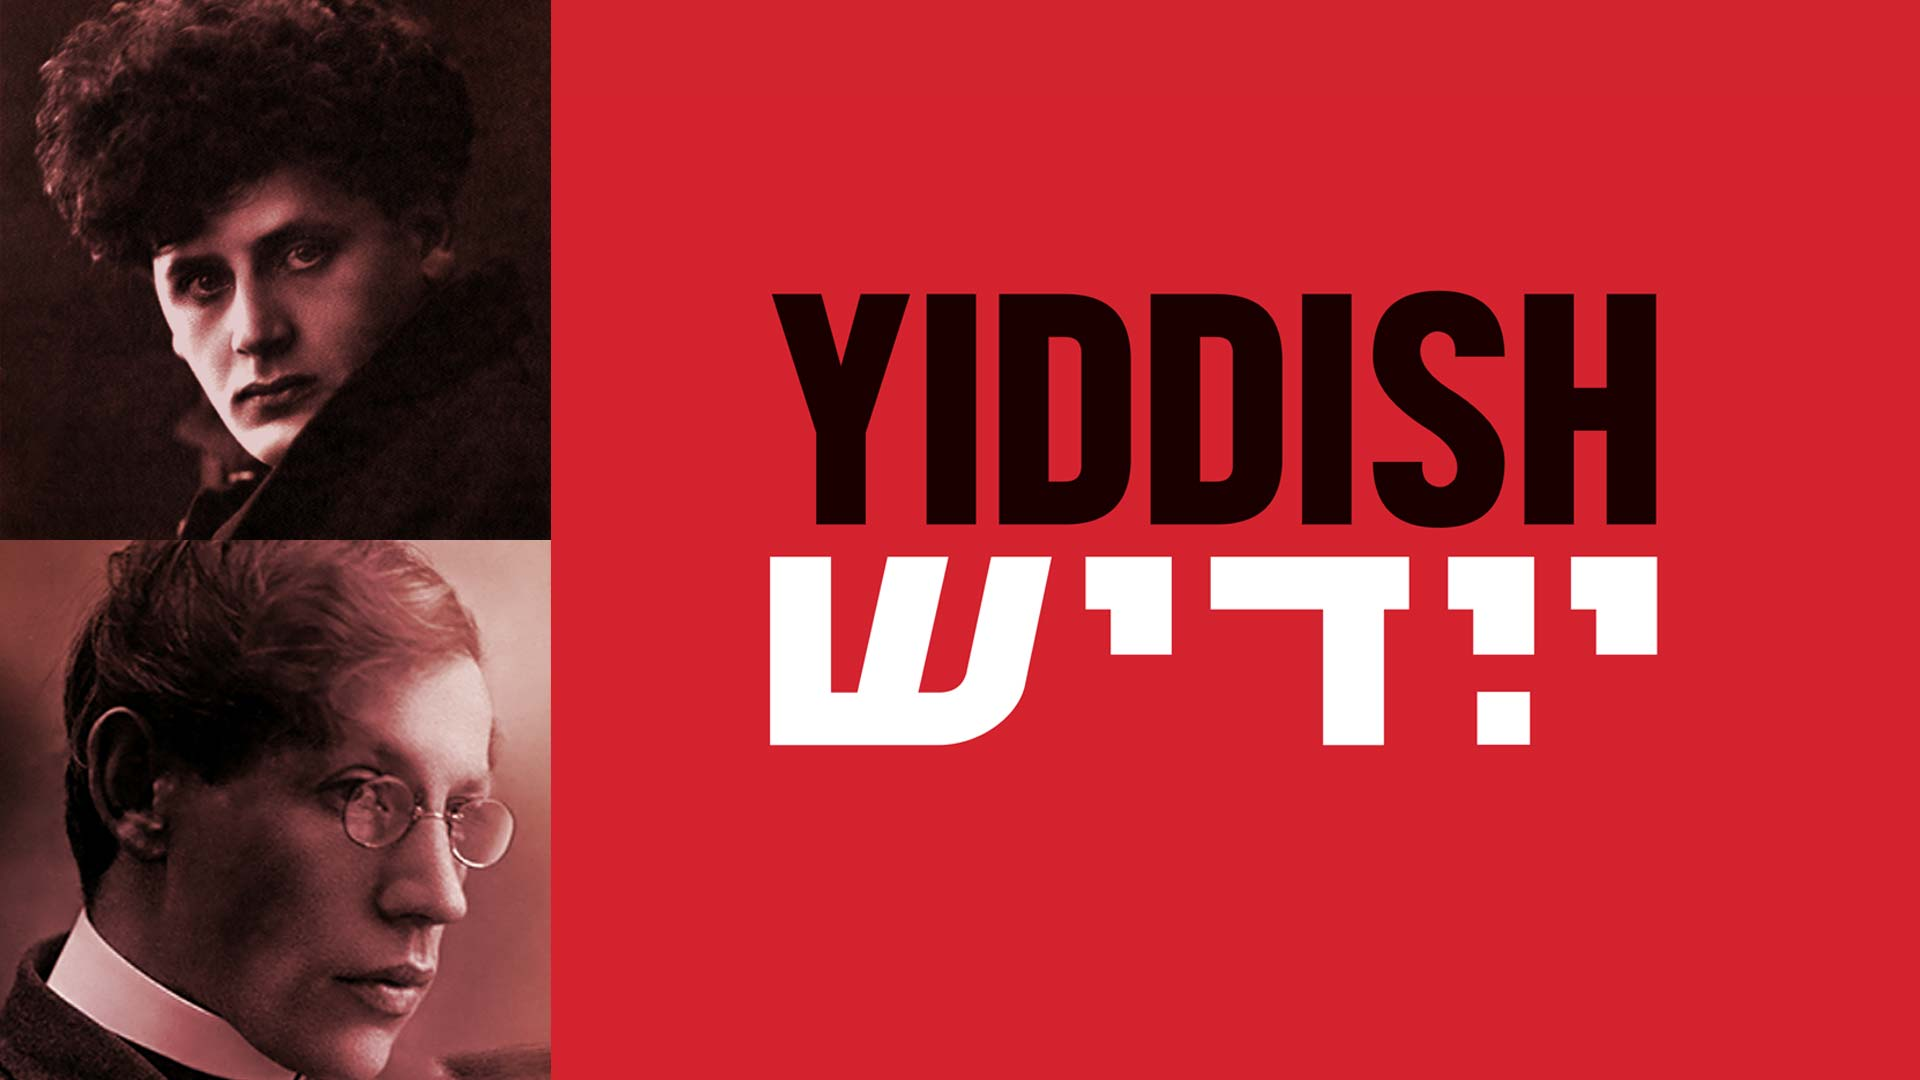 Yiddish - image